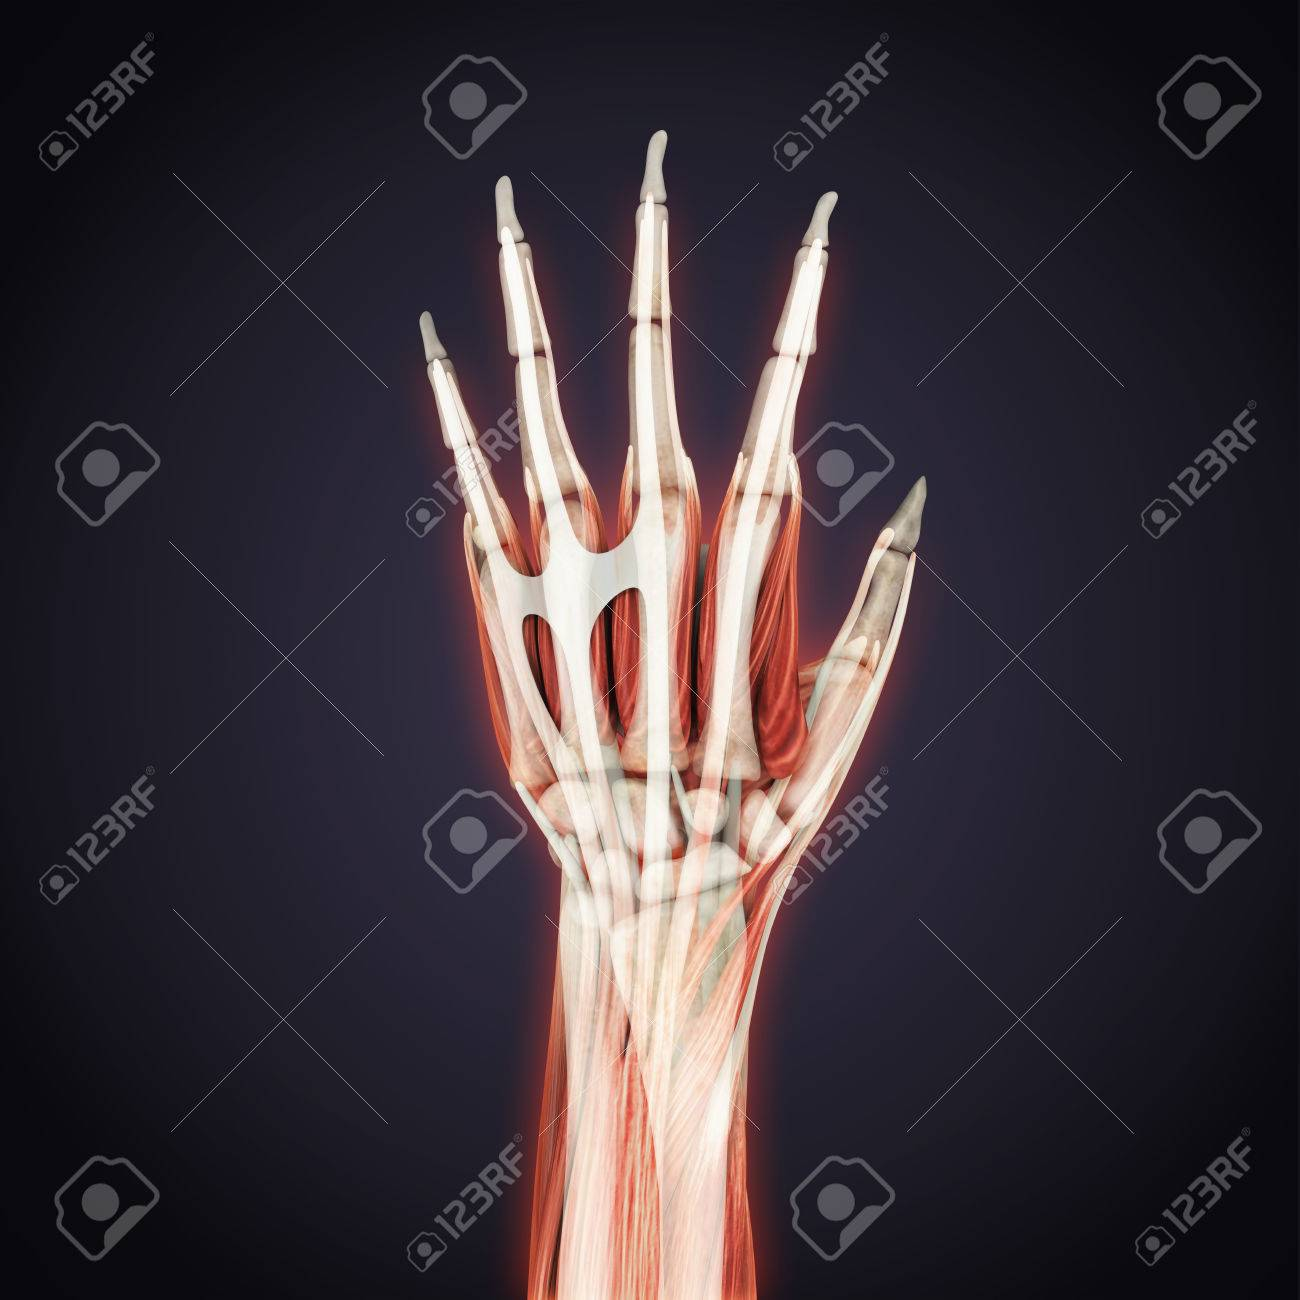 Human Hand Anatomy Illustration Stock Photo Picture And Royalty